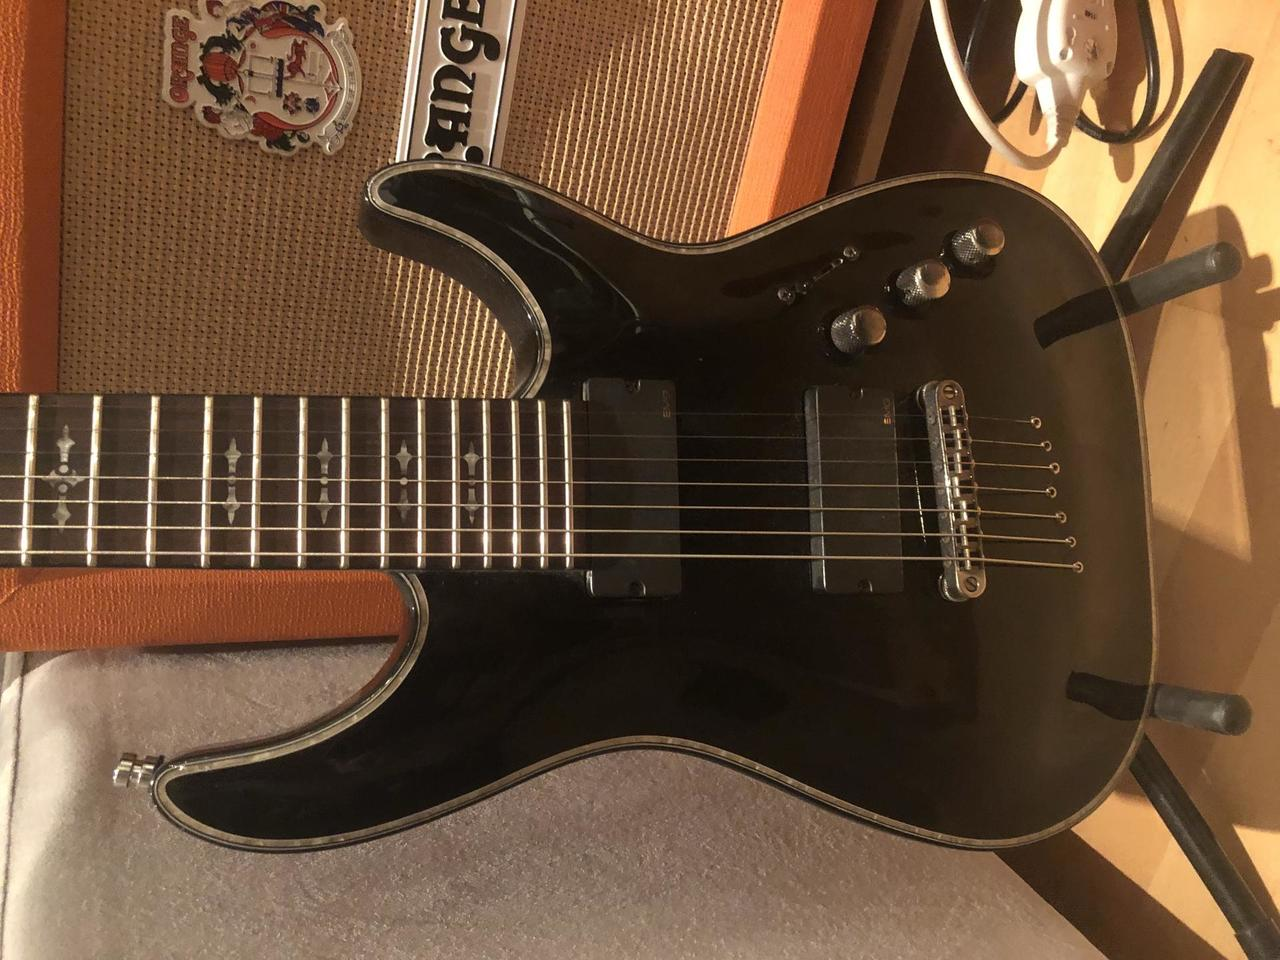 Schecter Hellraiser C7 Diamond series - Black + Kufor + Pas